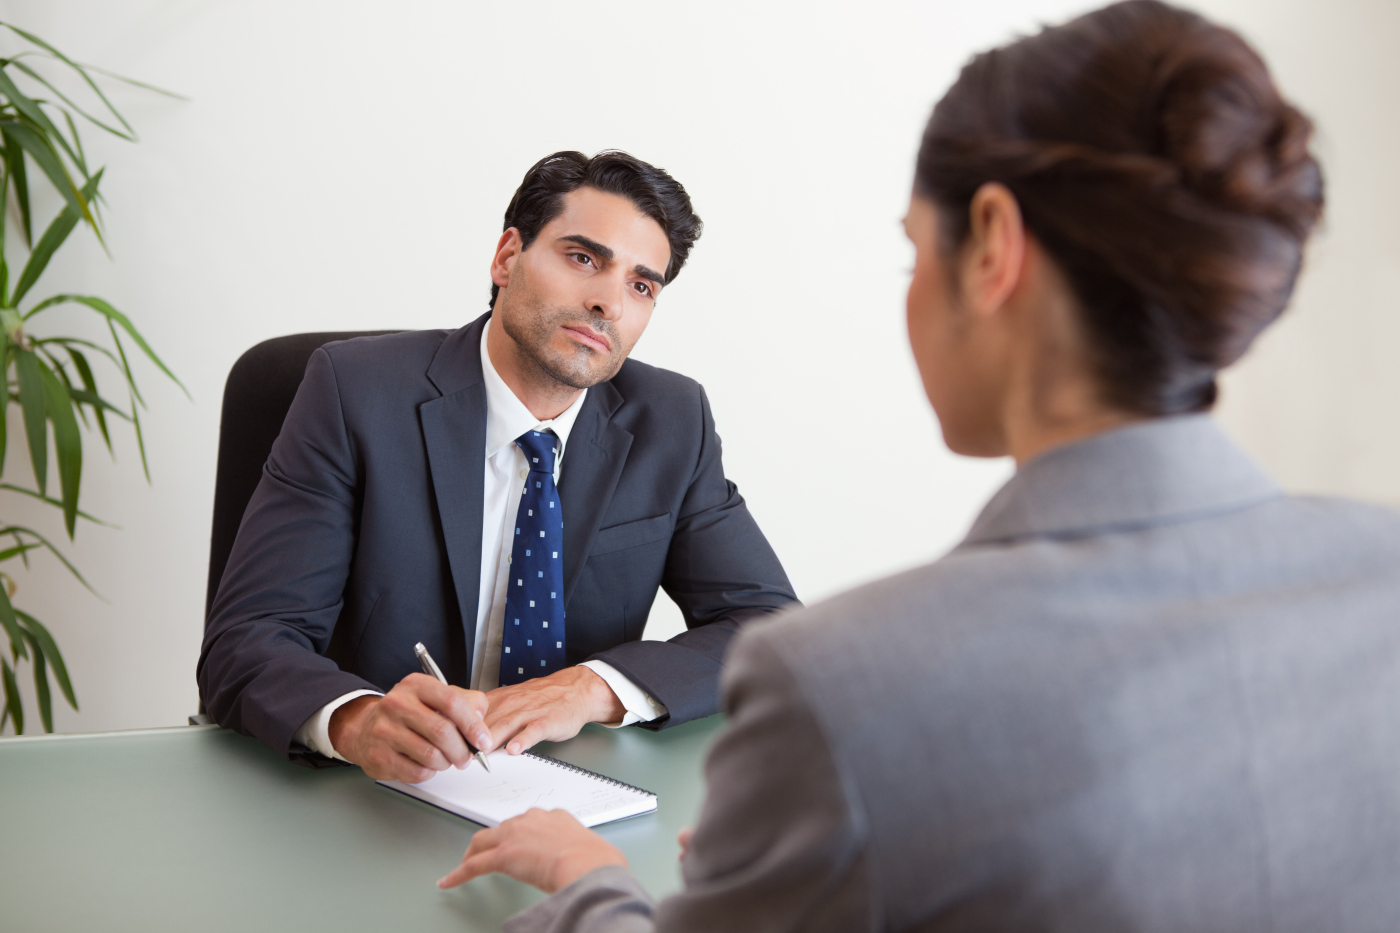 Did the interview go wrong? Here's what you need to do now